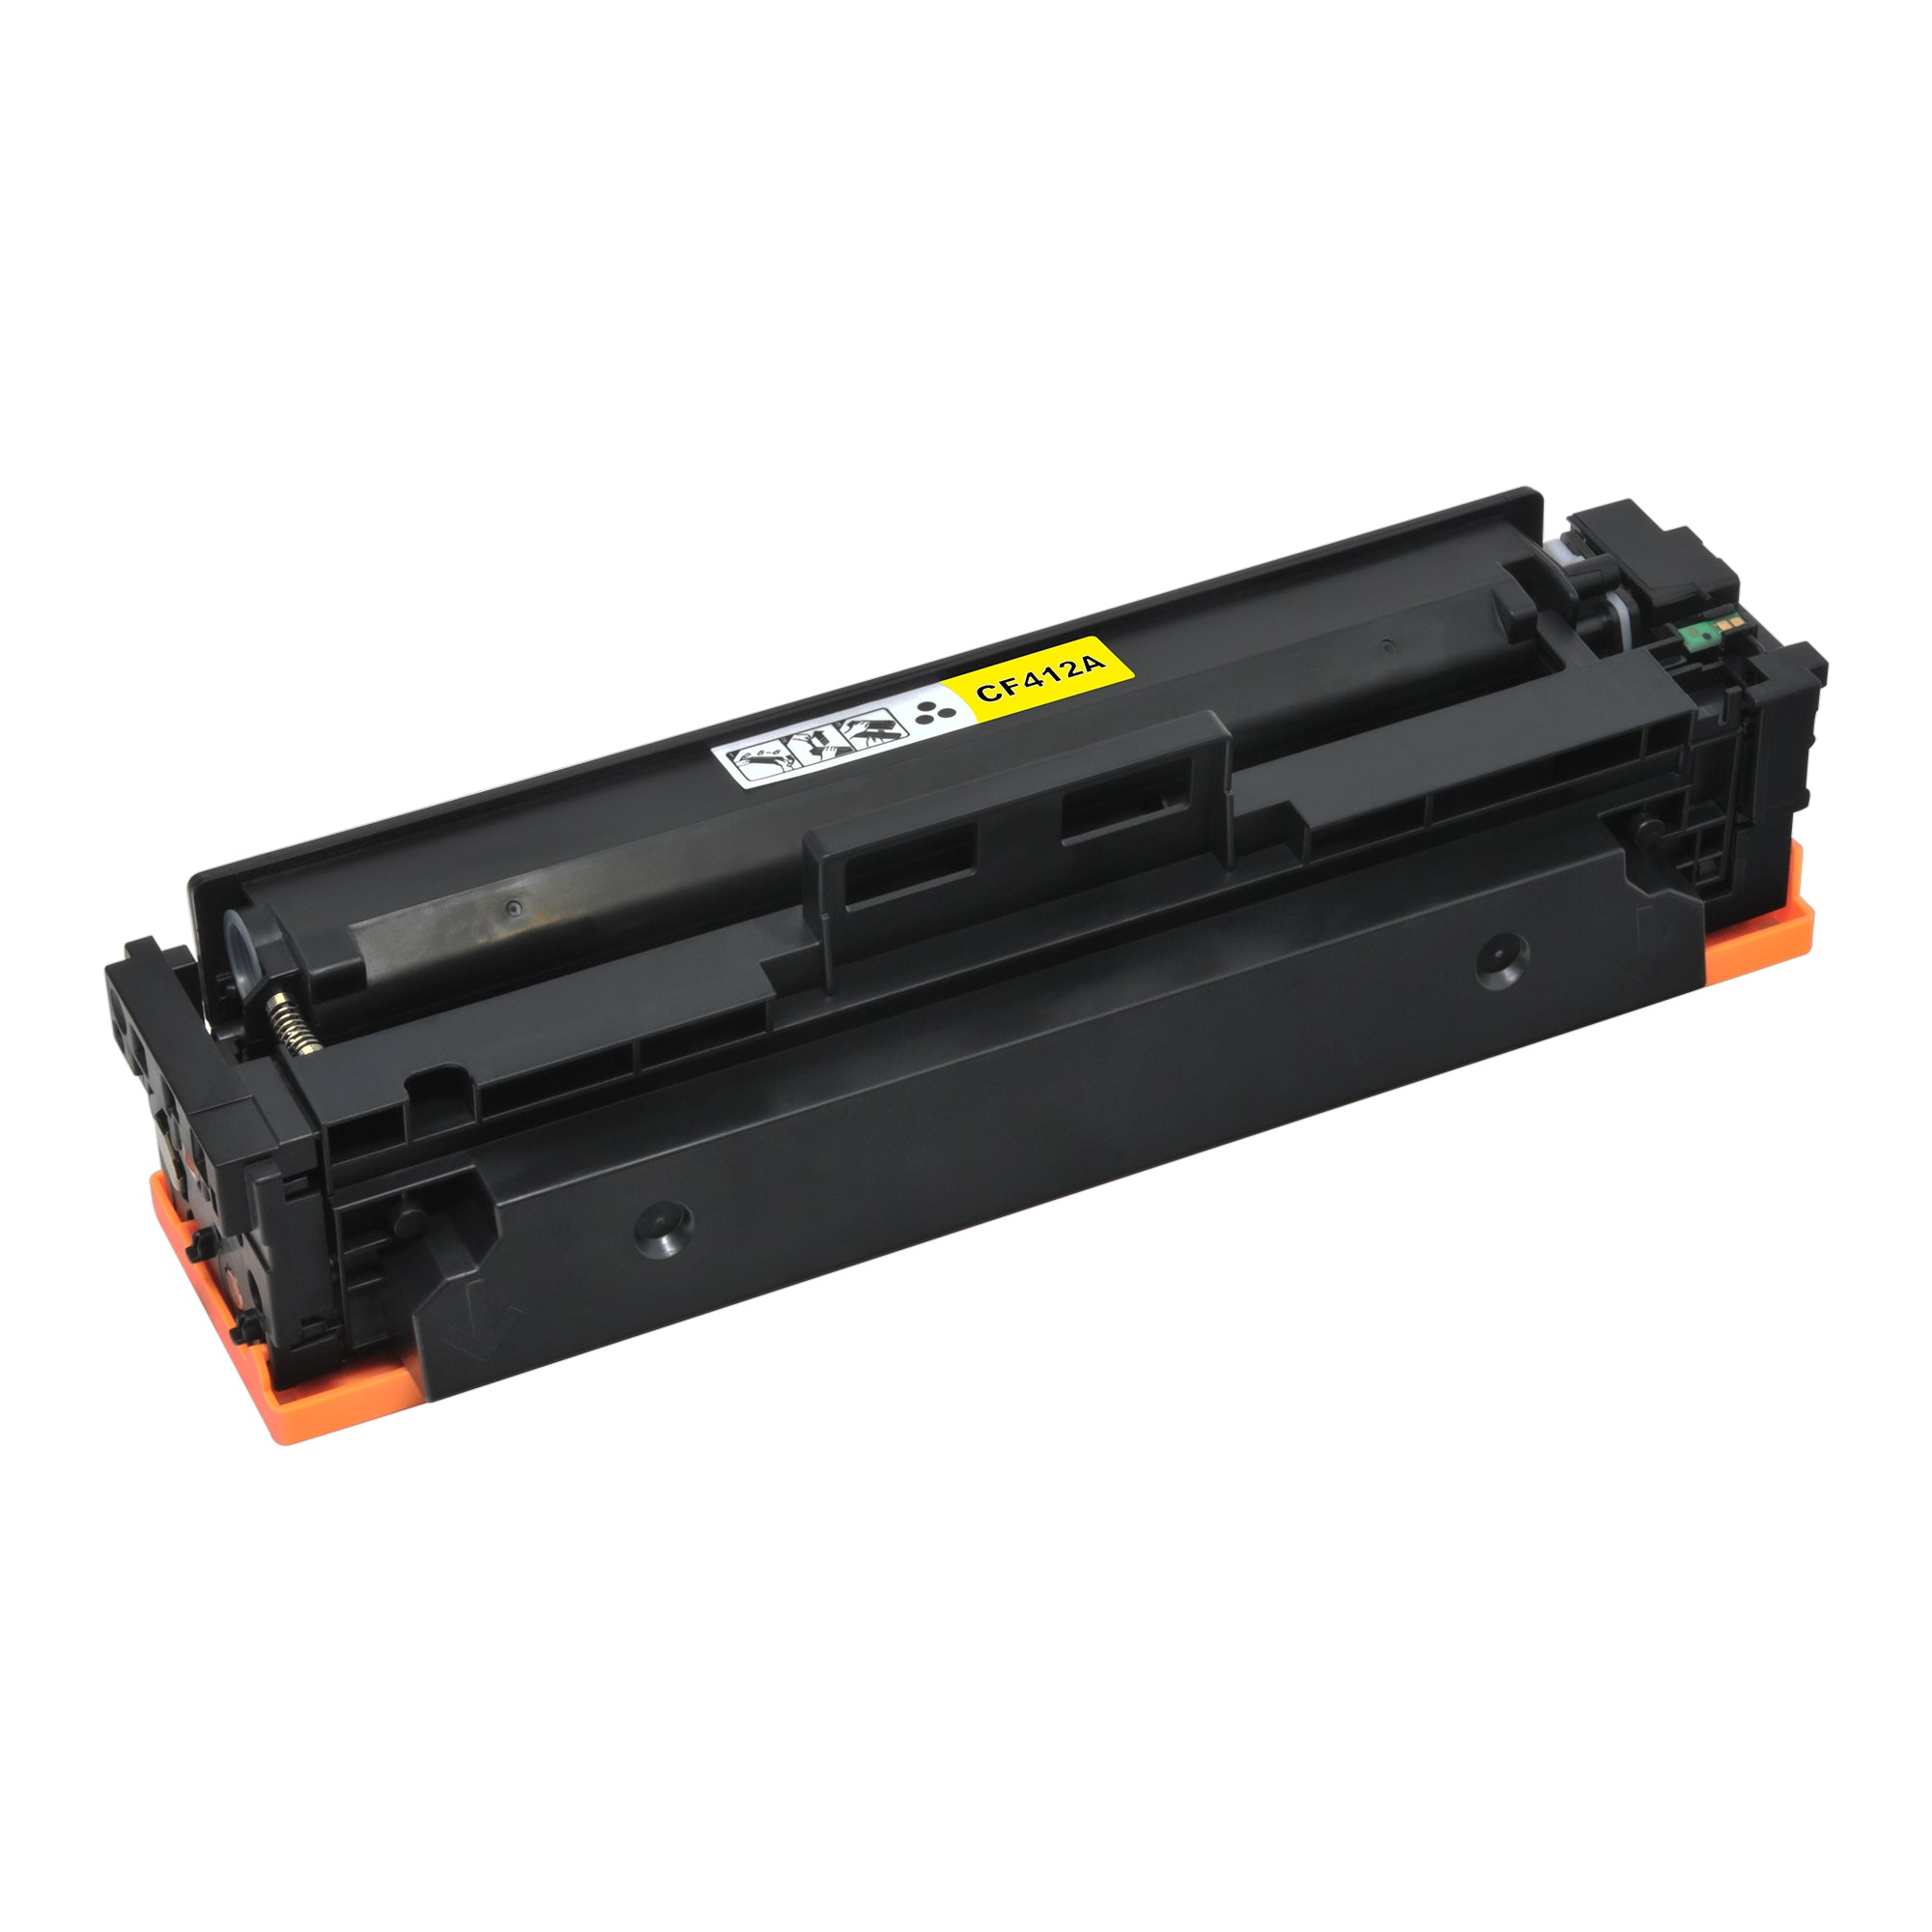 Arthur Imaging Compatible High Yield Toner Cartridge Replacement for HP 410A, CF410A, CF411A, CF412A, CF413A (Black, Cyan, Magenta, Yellow, 4-Pack)